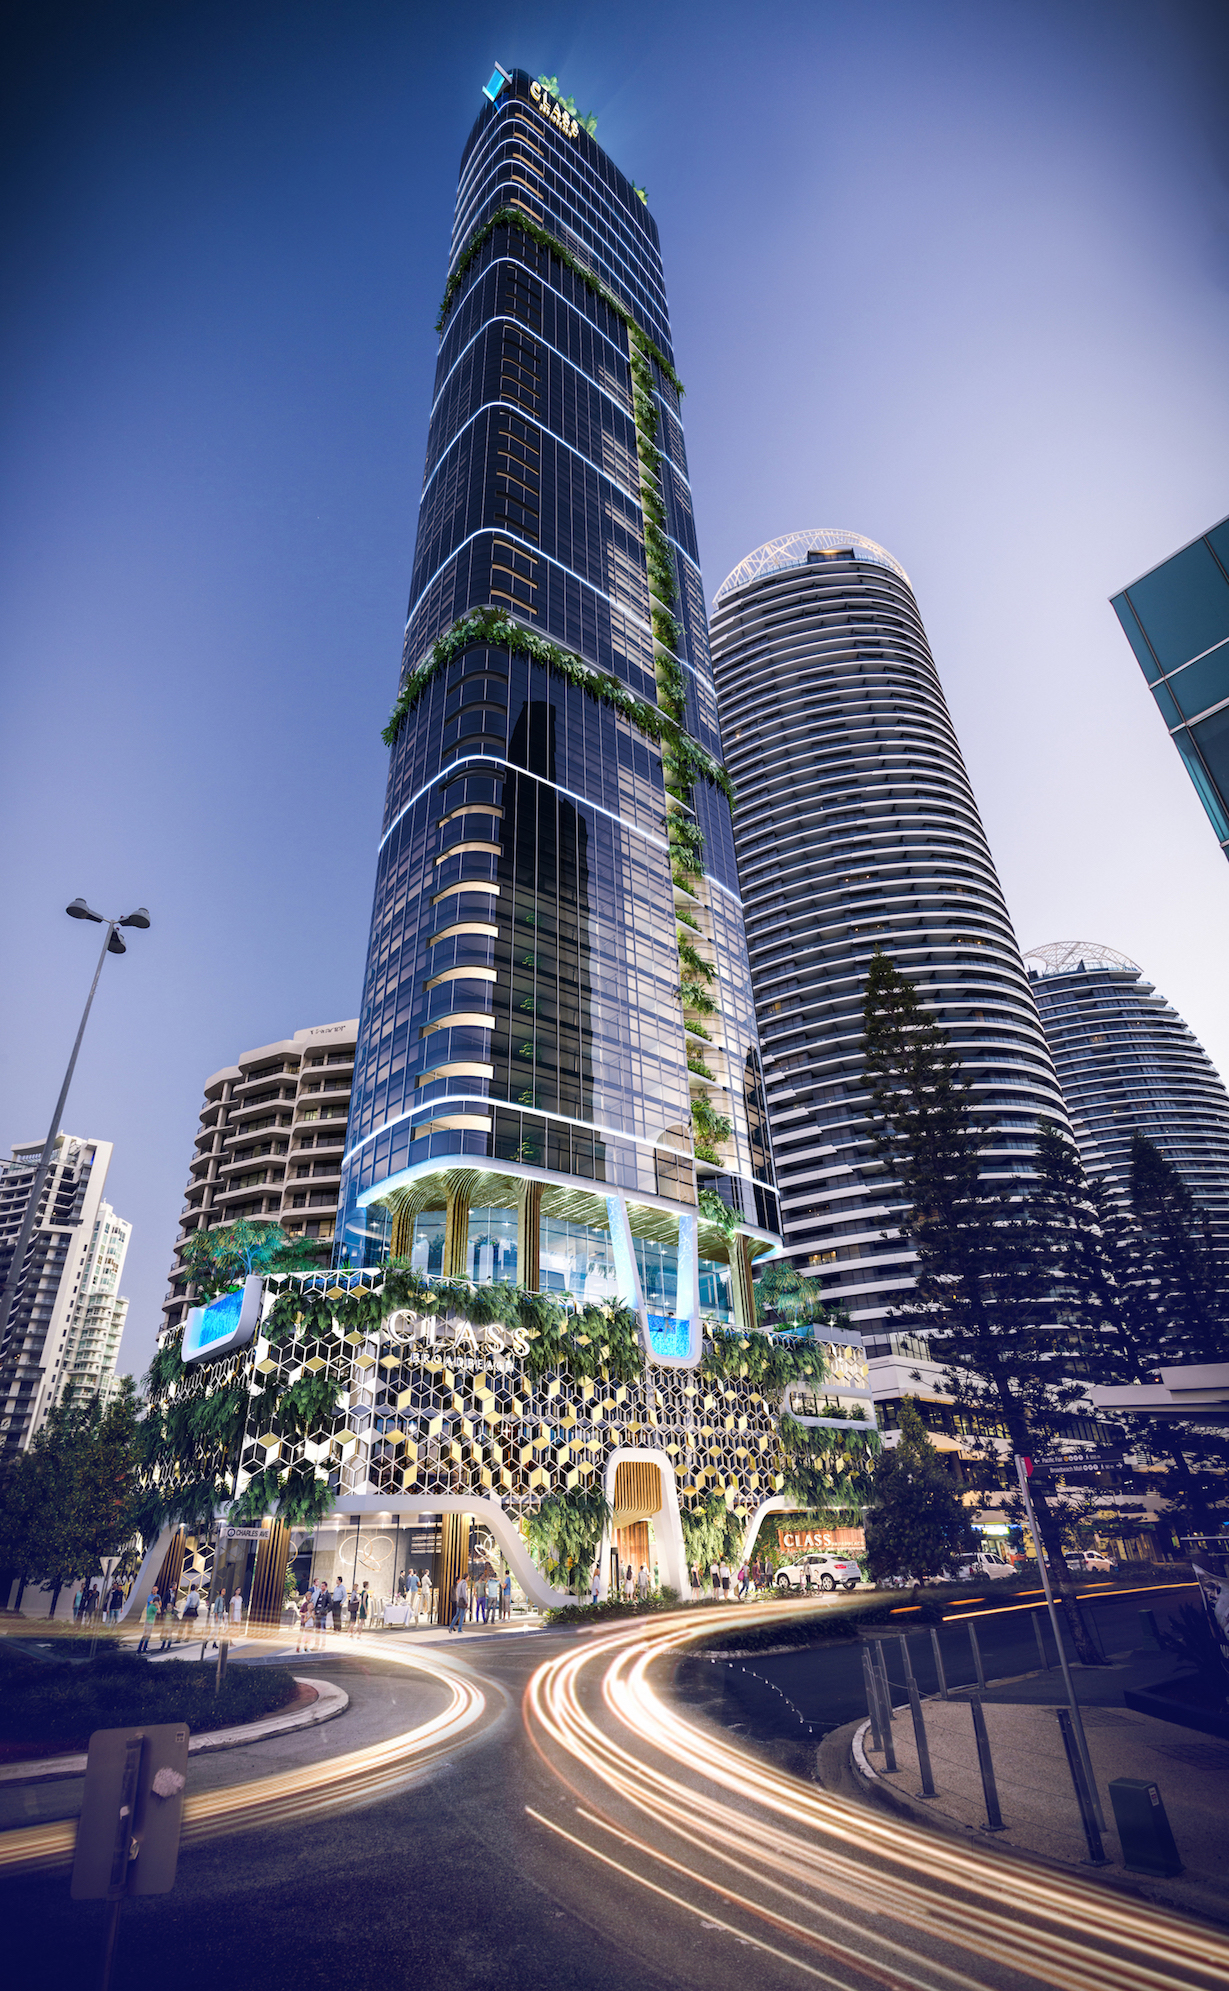 Architects RH Frankland and Associates have designed the glass-clad skyscraper to mimic the natural elements of Broadbeach with vertical and horizontal green walls.